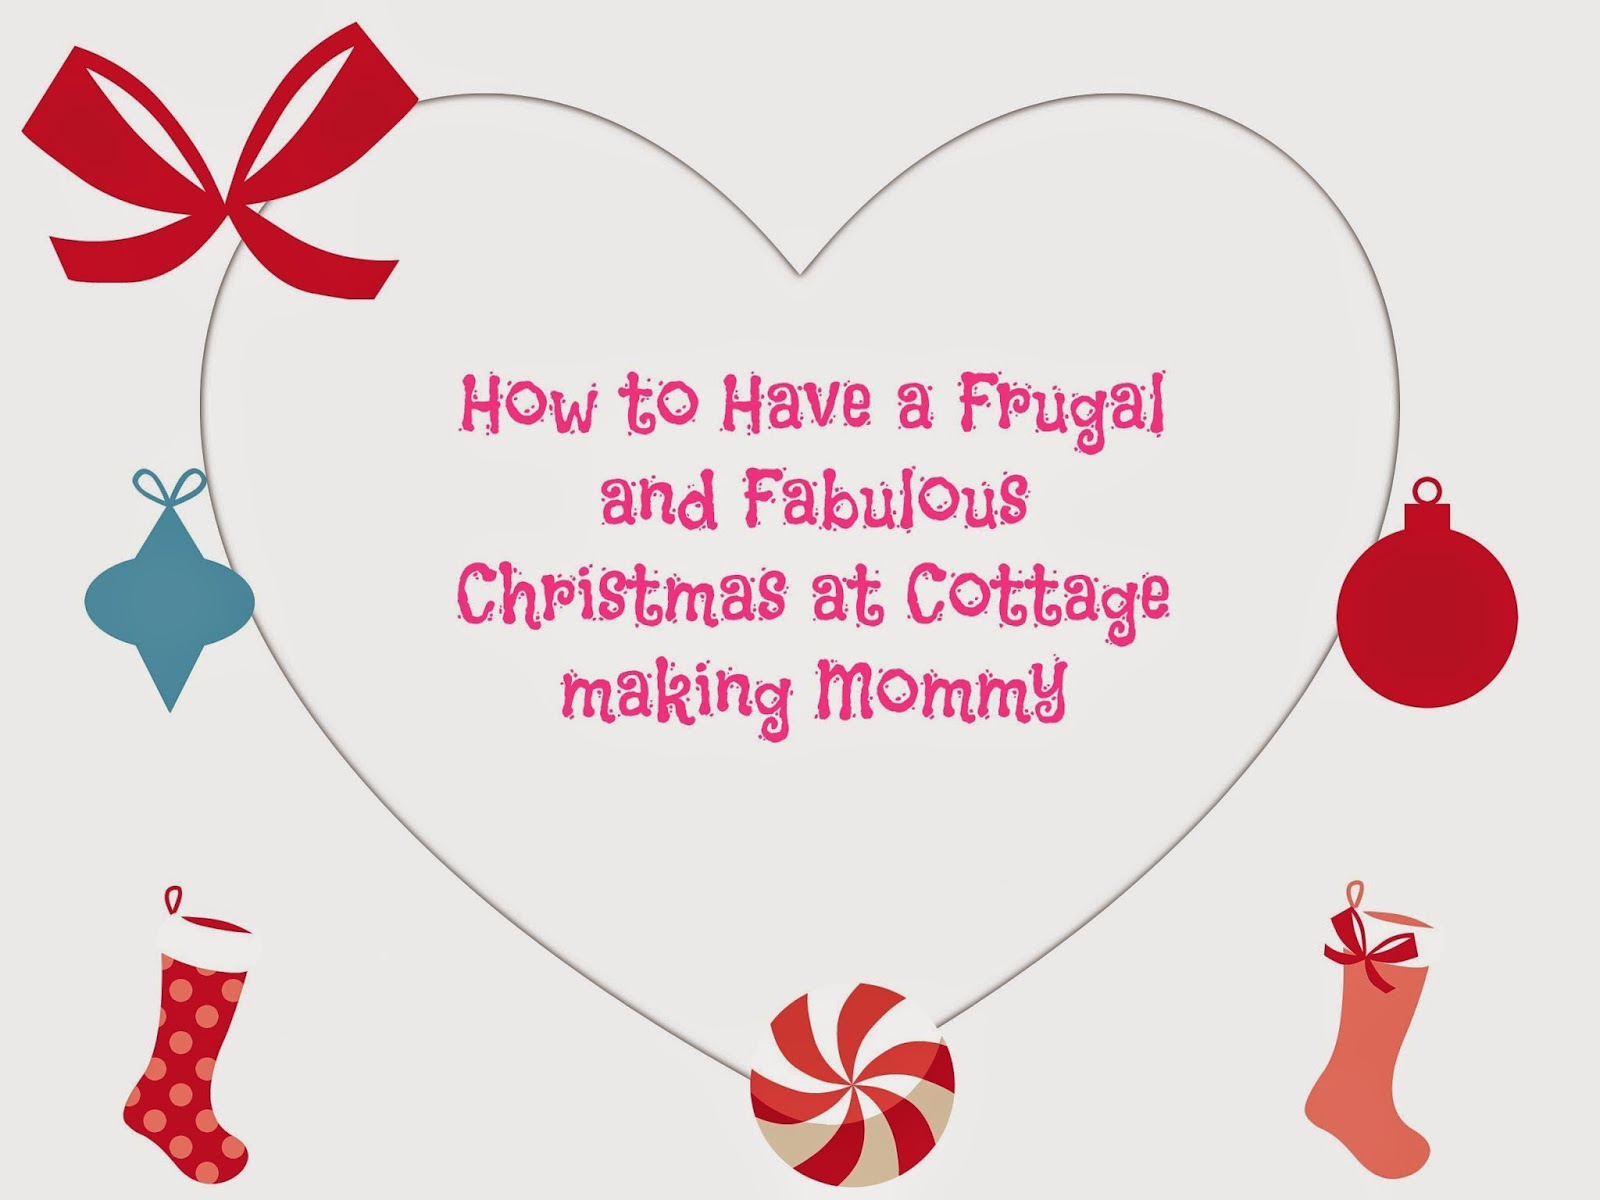 Cottage Making Mommy: How to Have a Frugal and Fabulous Christmas Day 5